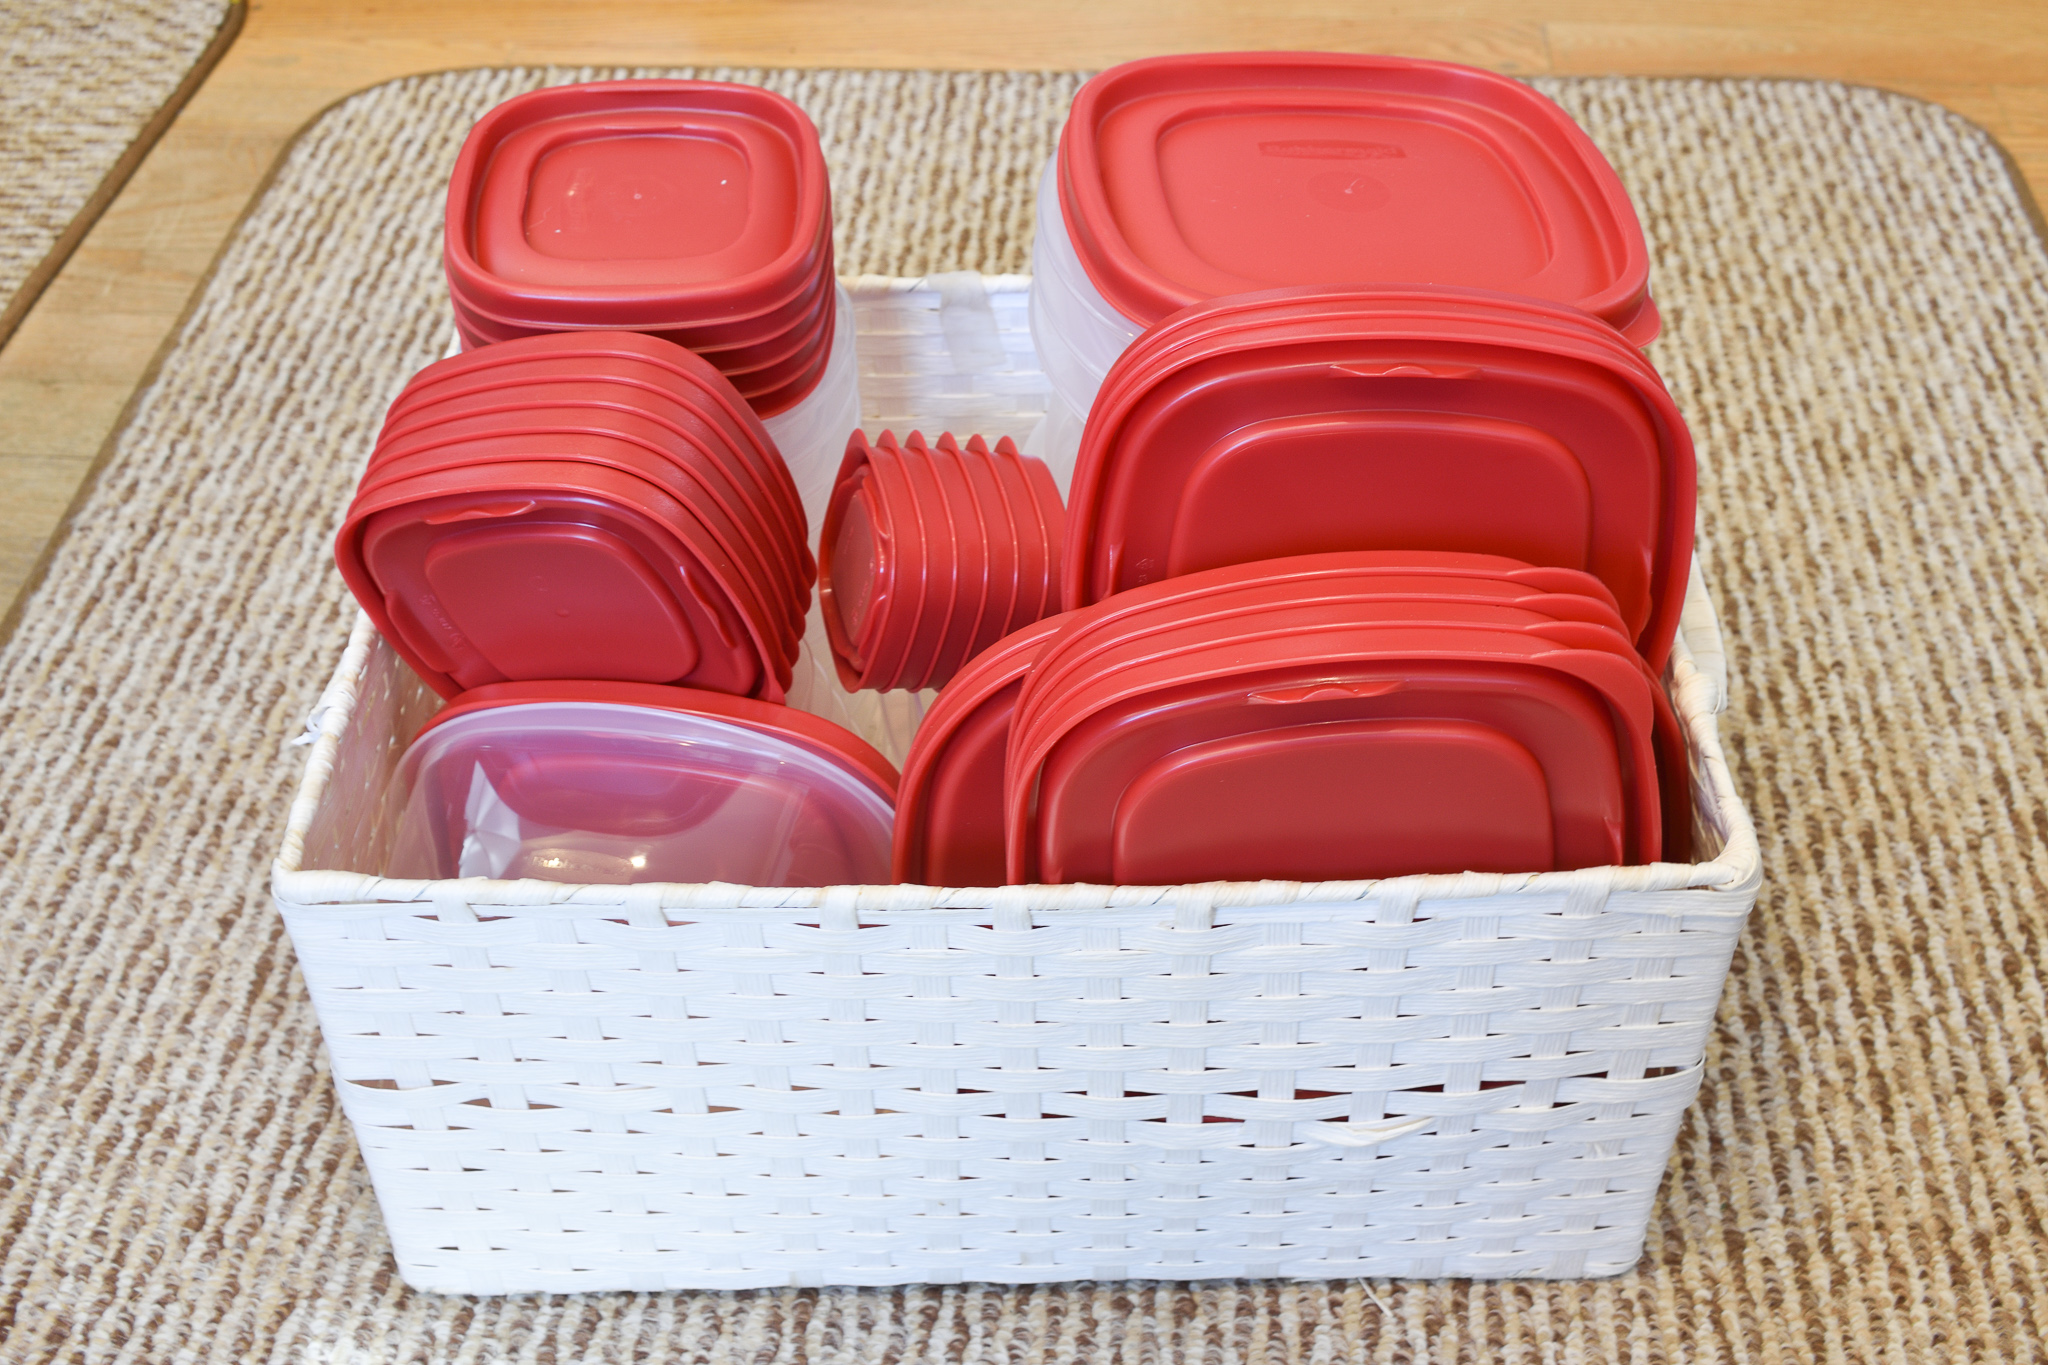 food storage containers organized in a box